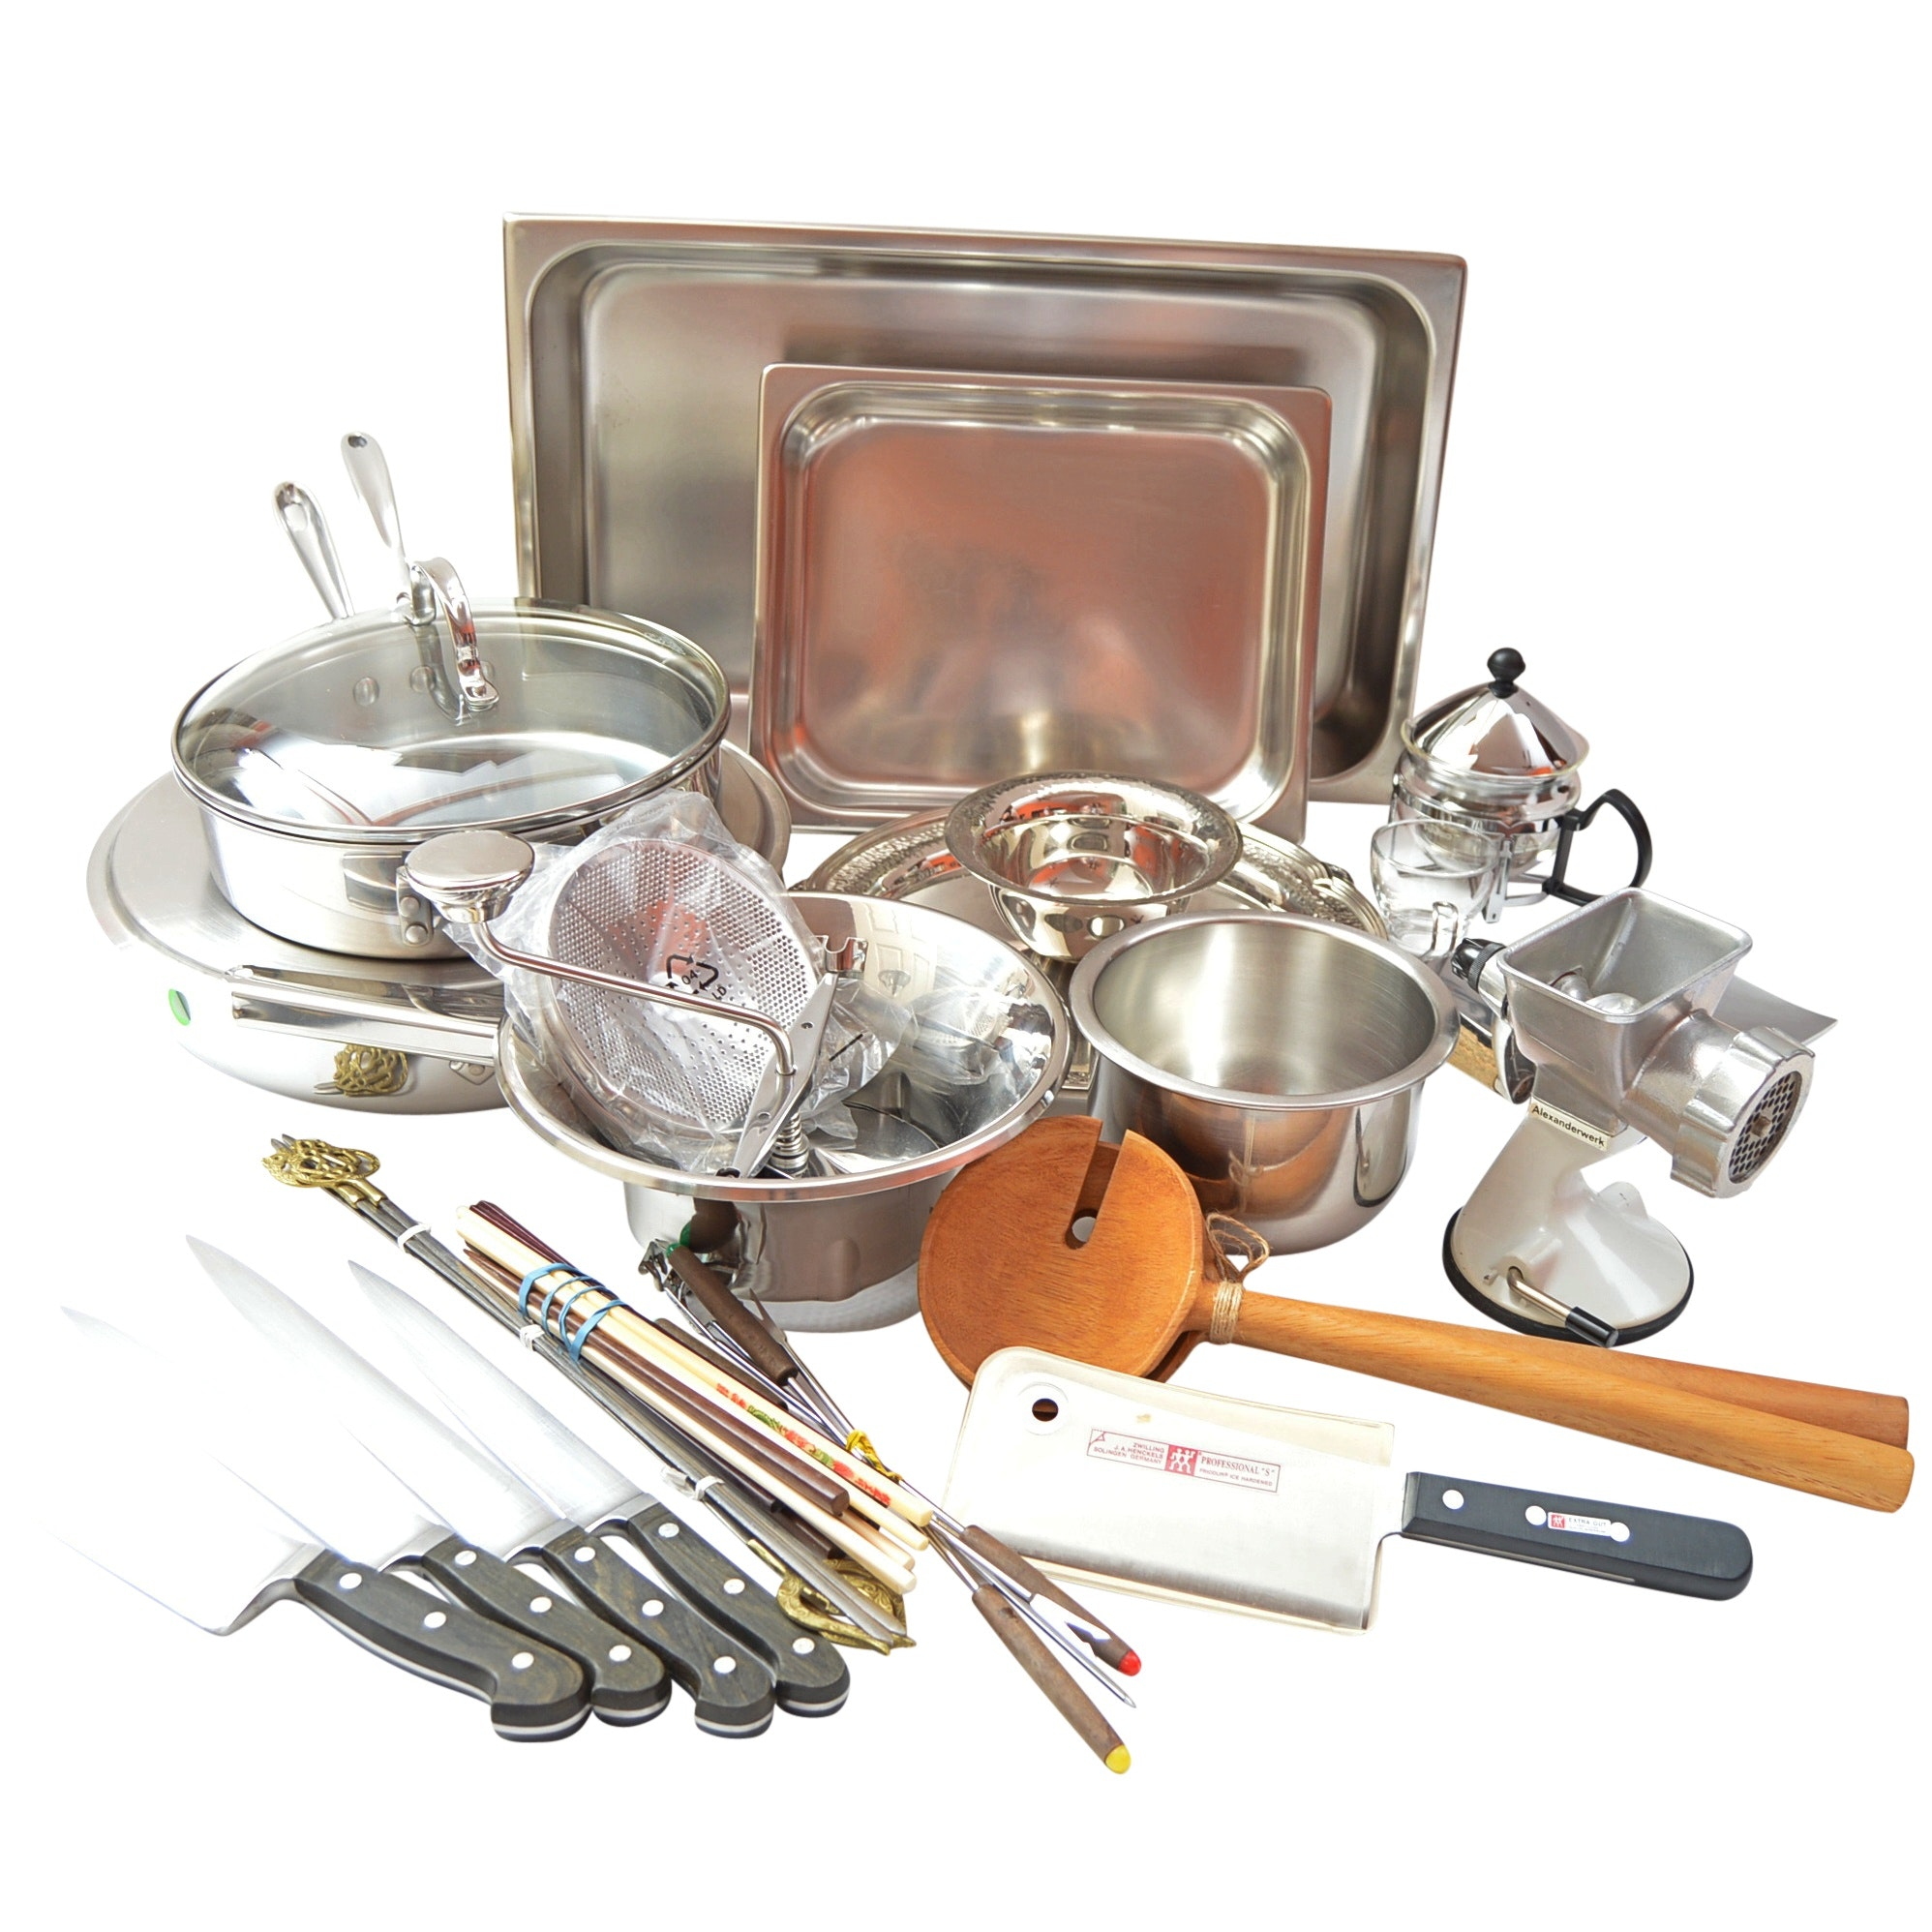 Kitchenware Including All-Clad Cookware, Henckles Knives